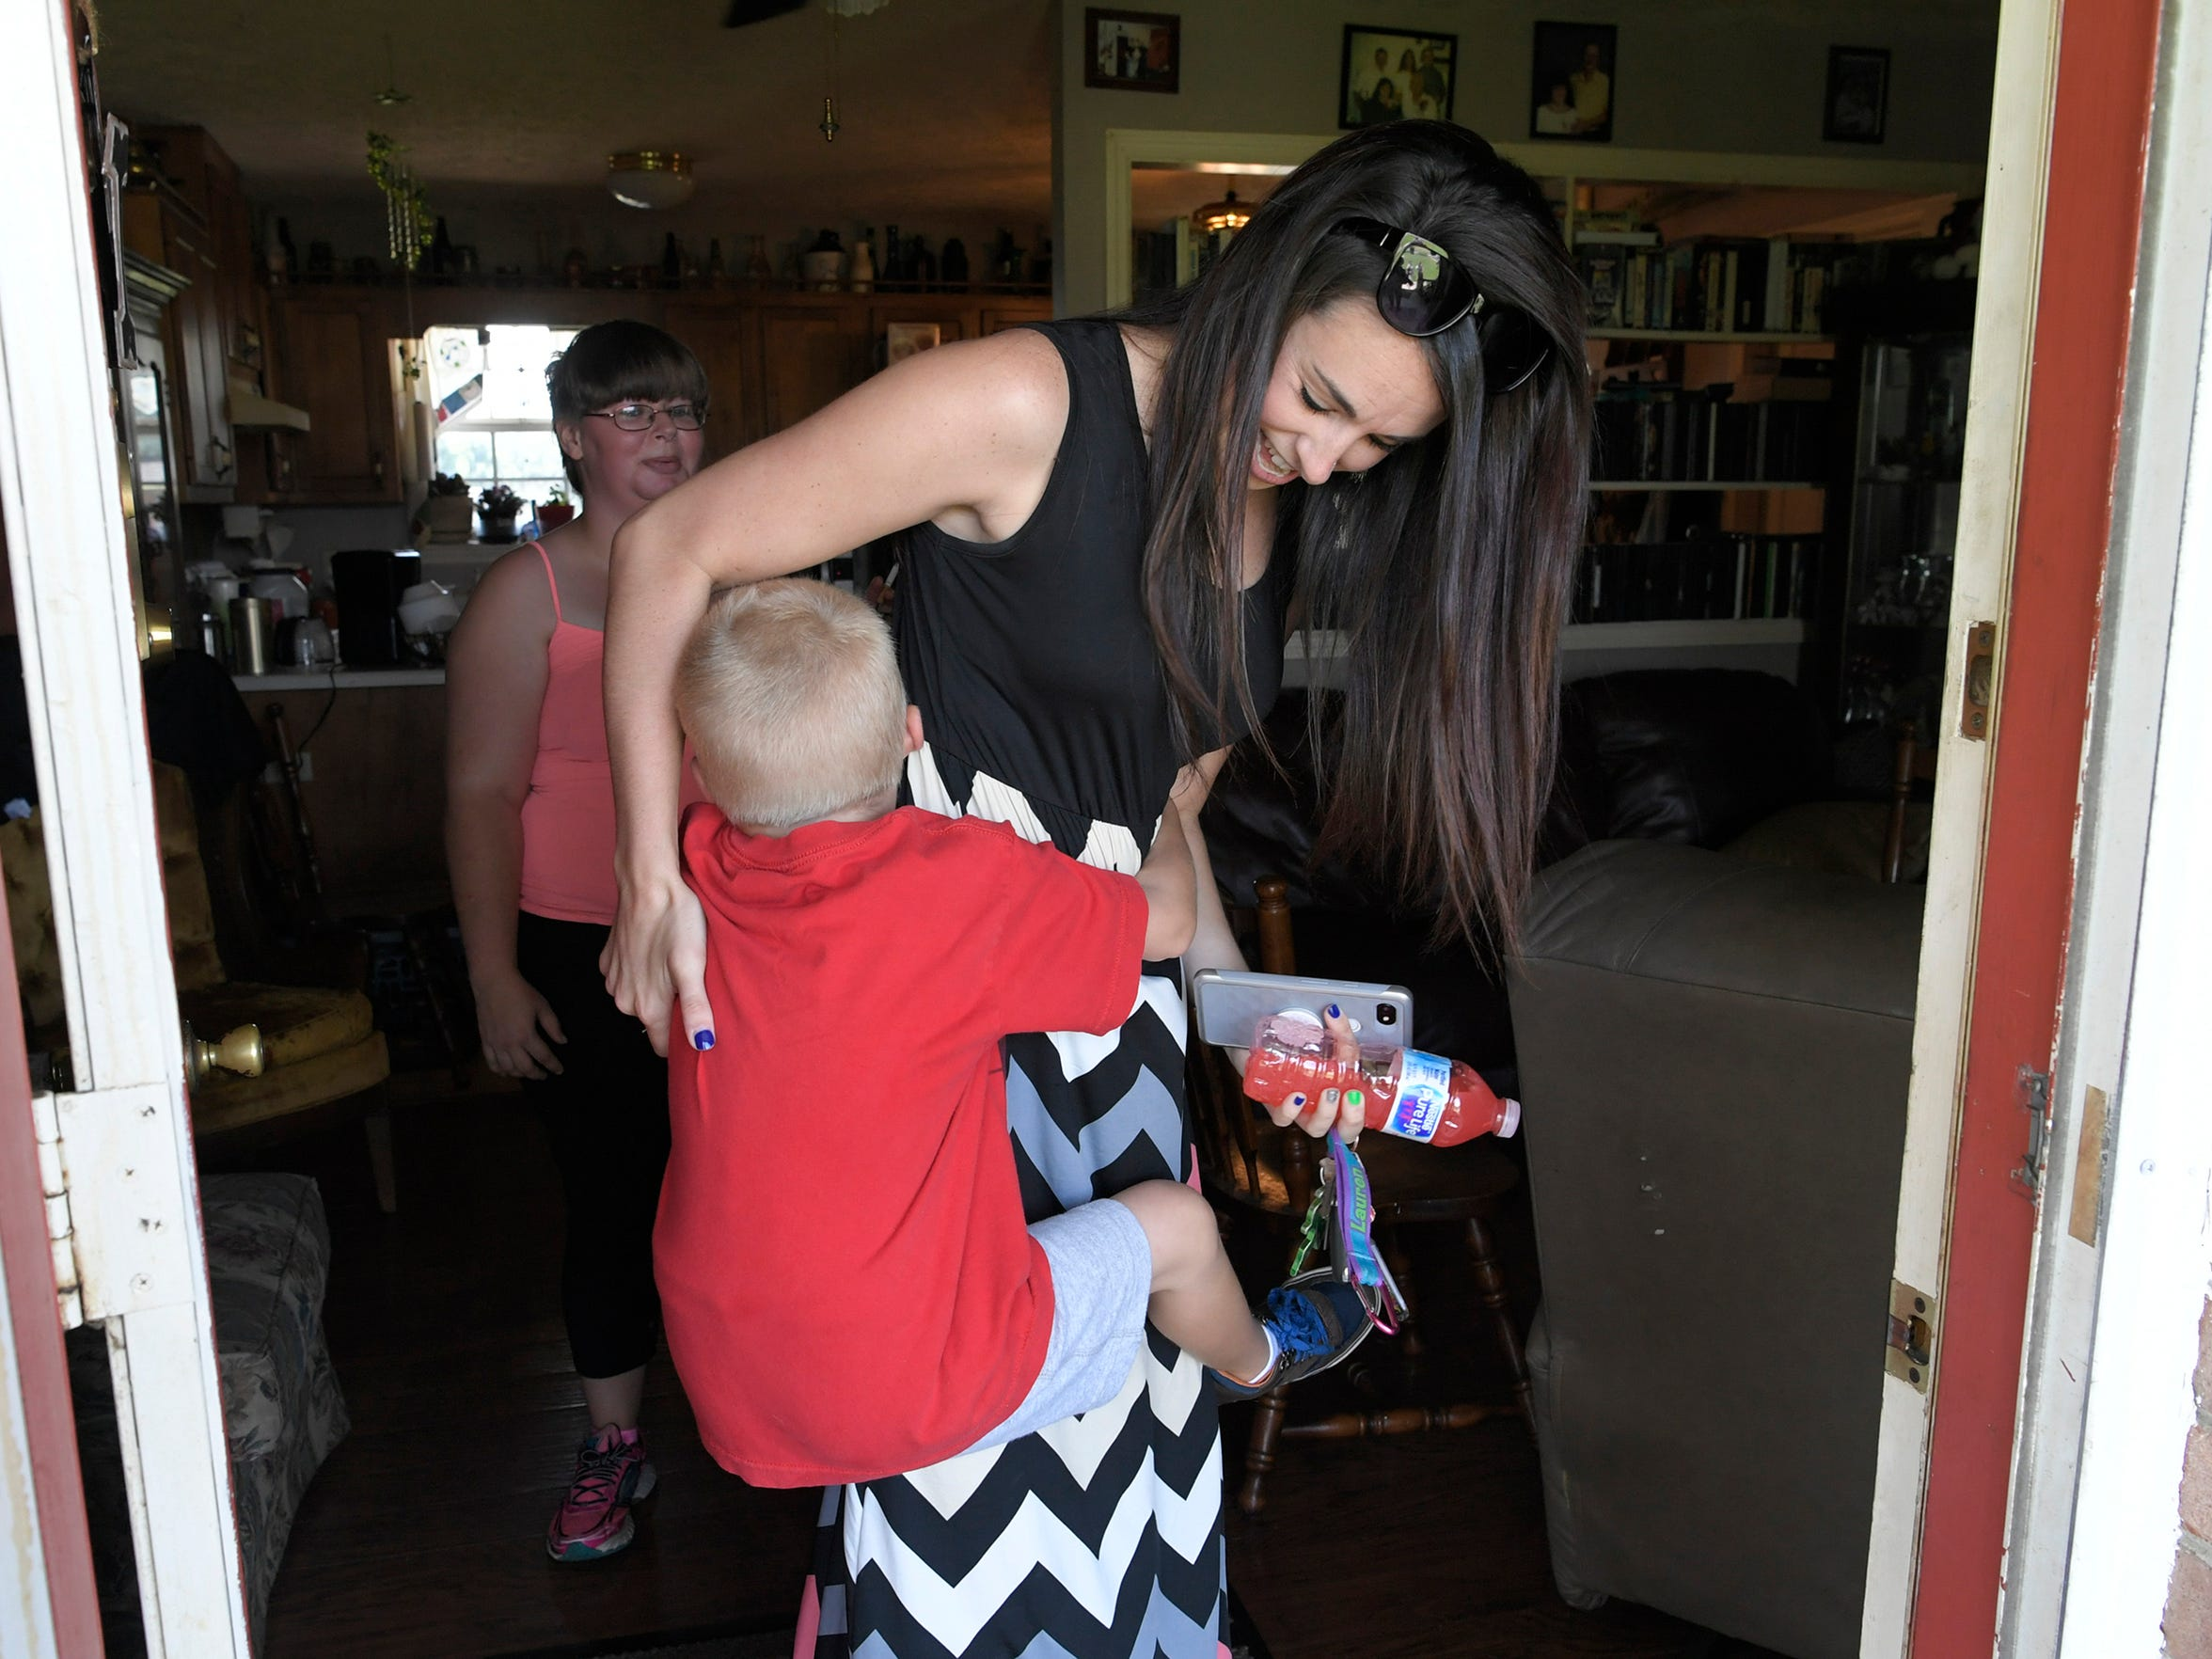 Lacey Lewis, a family intervention specialist with Youth Villages, says goodbye to Bryson Hines, 5, as he tries to stop her from leaving his home on Thursday, July 19, 2018.  Tasha Burragne and her children are part of a pilot program with Youth Villages is doing with DCS to help prevent children from coming into foster care.